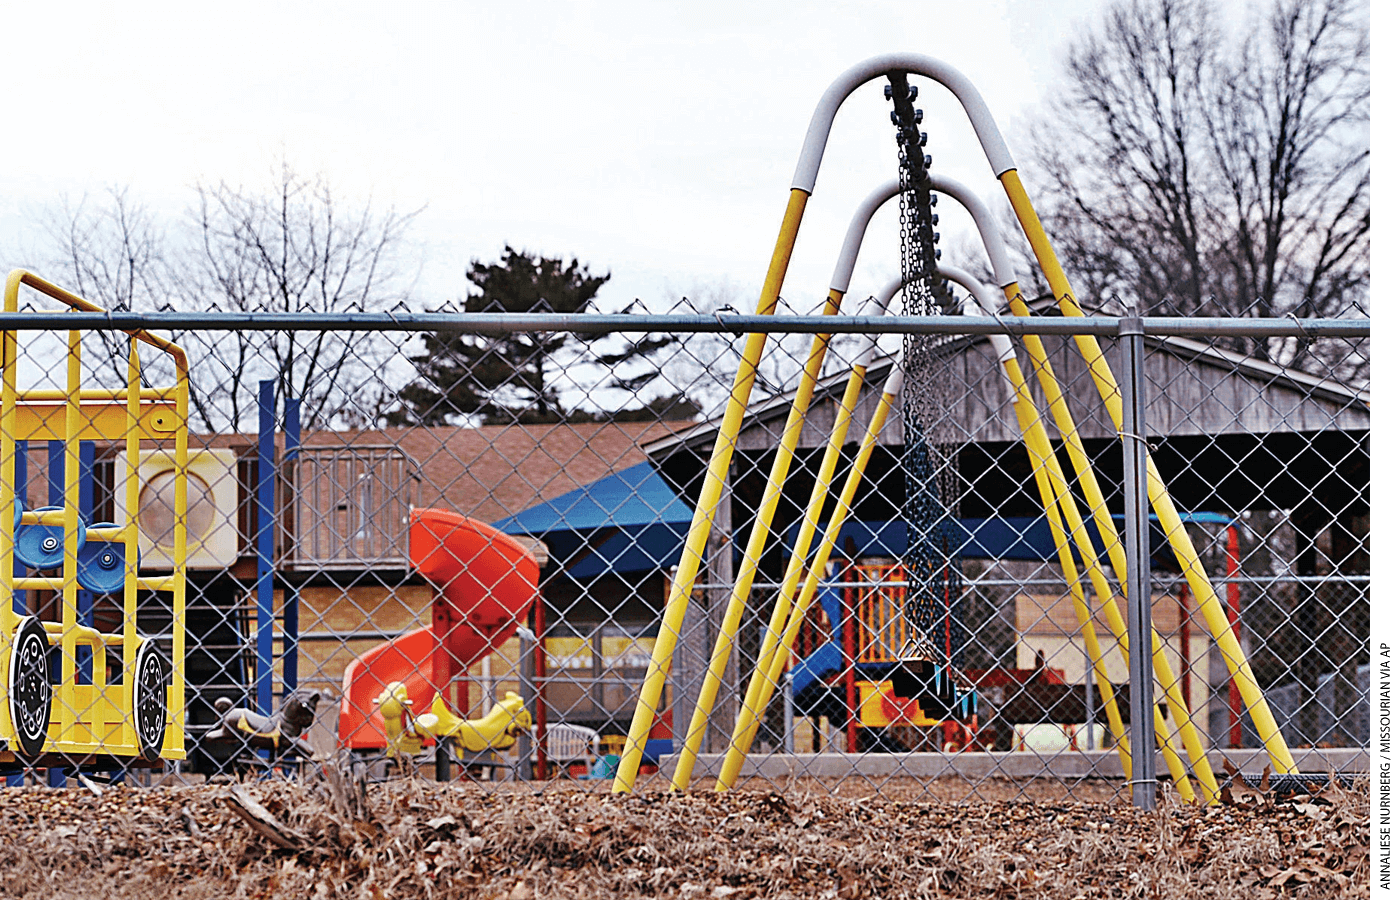 The playground at Trinity Lutheran Church in Columbia, Missouri.